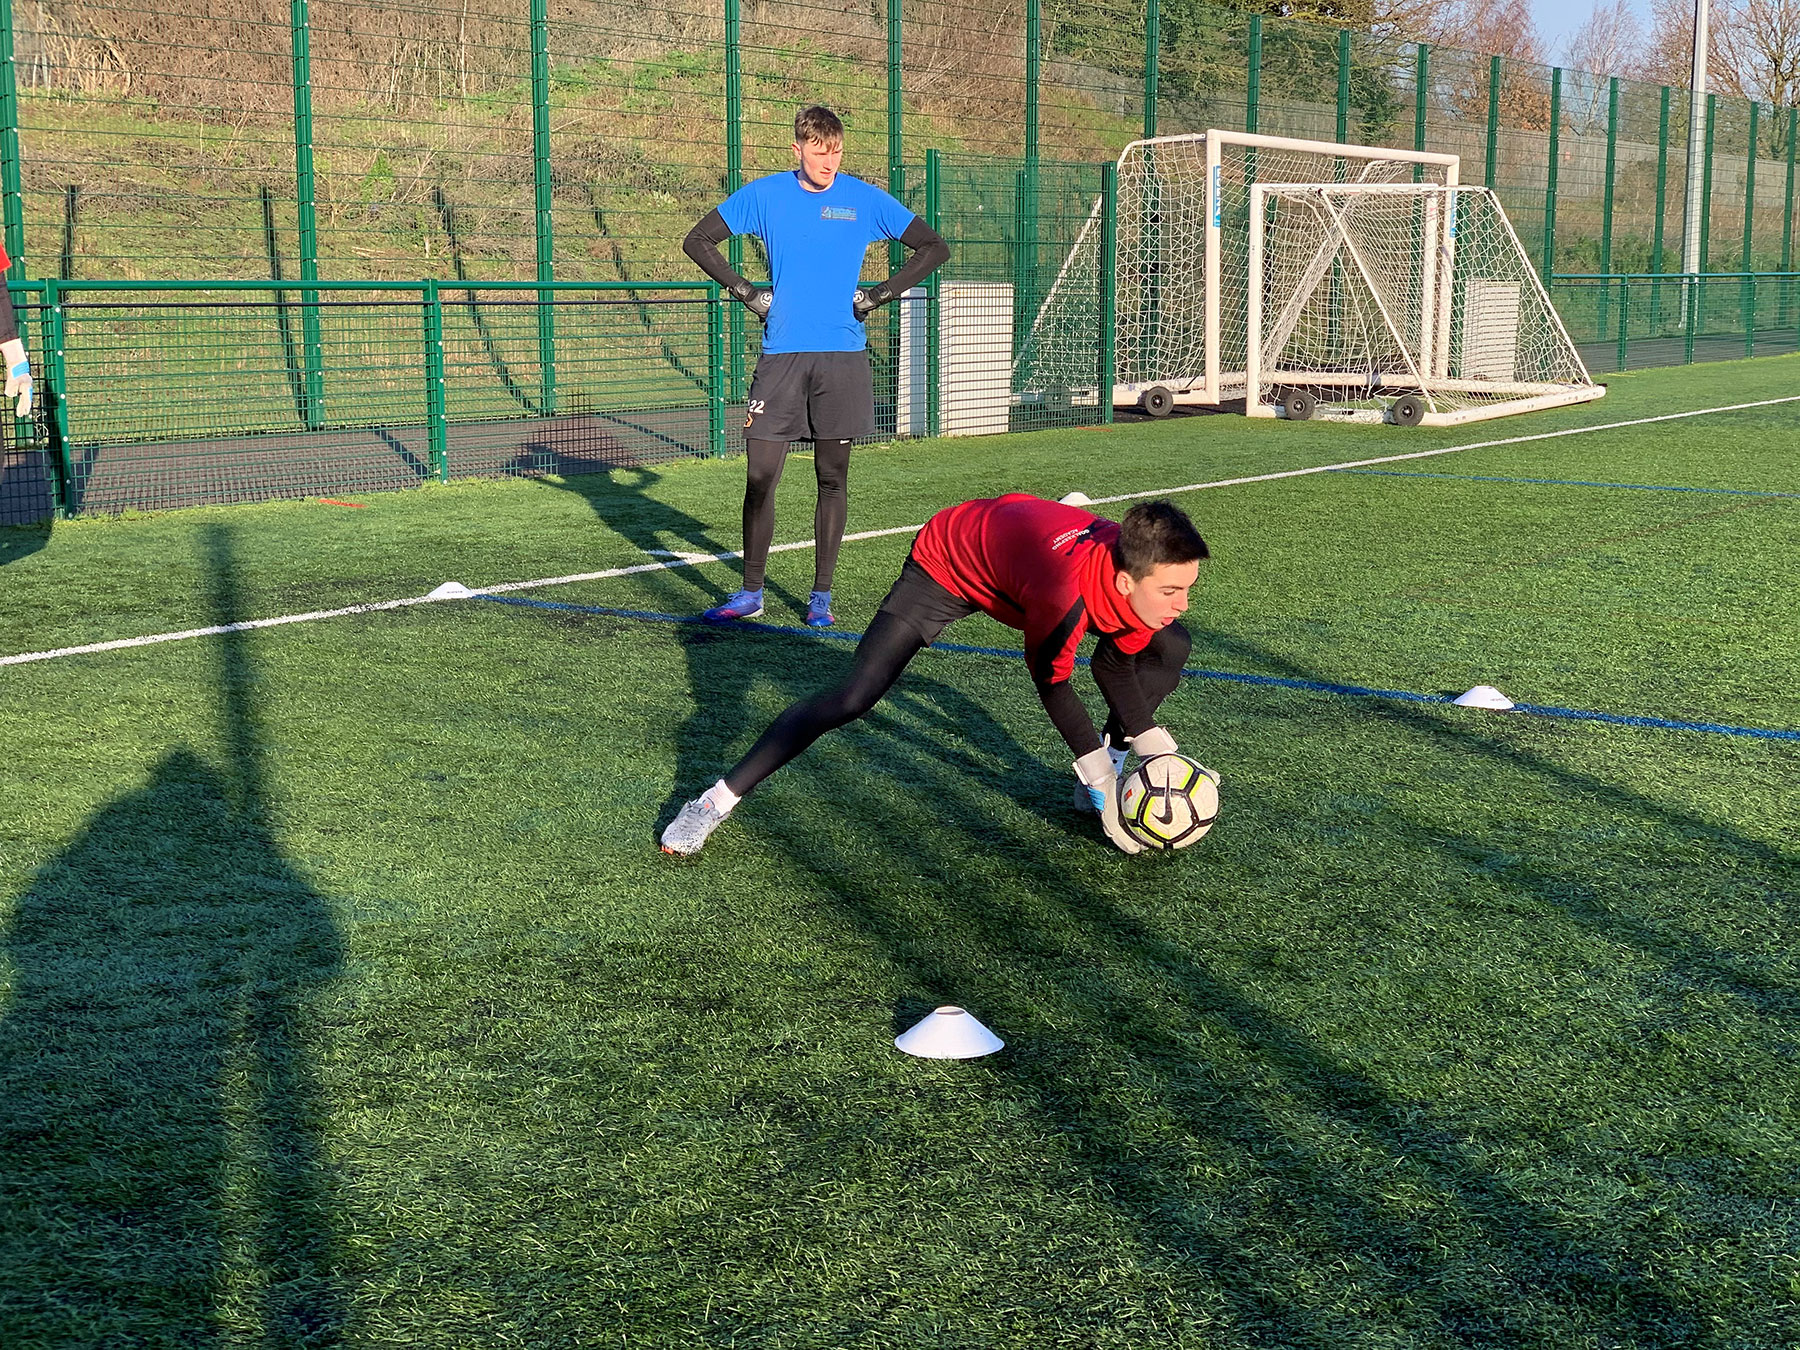 Goalkeepers training really well